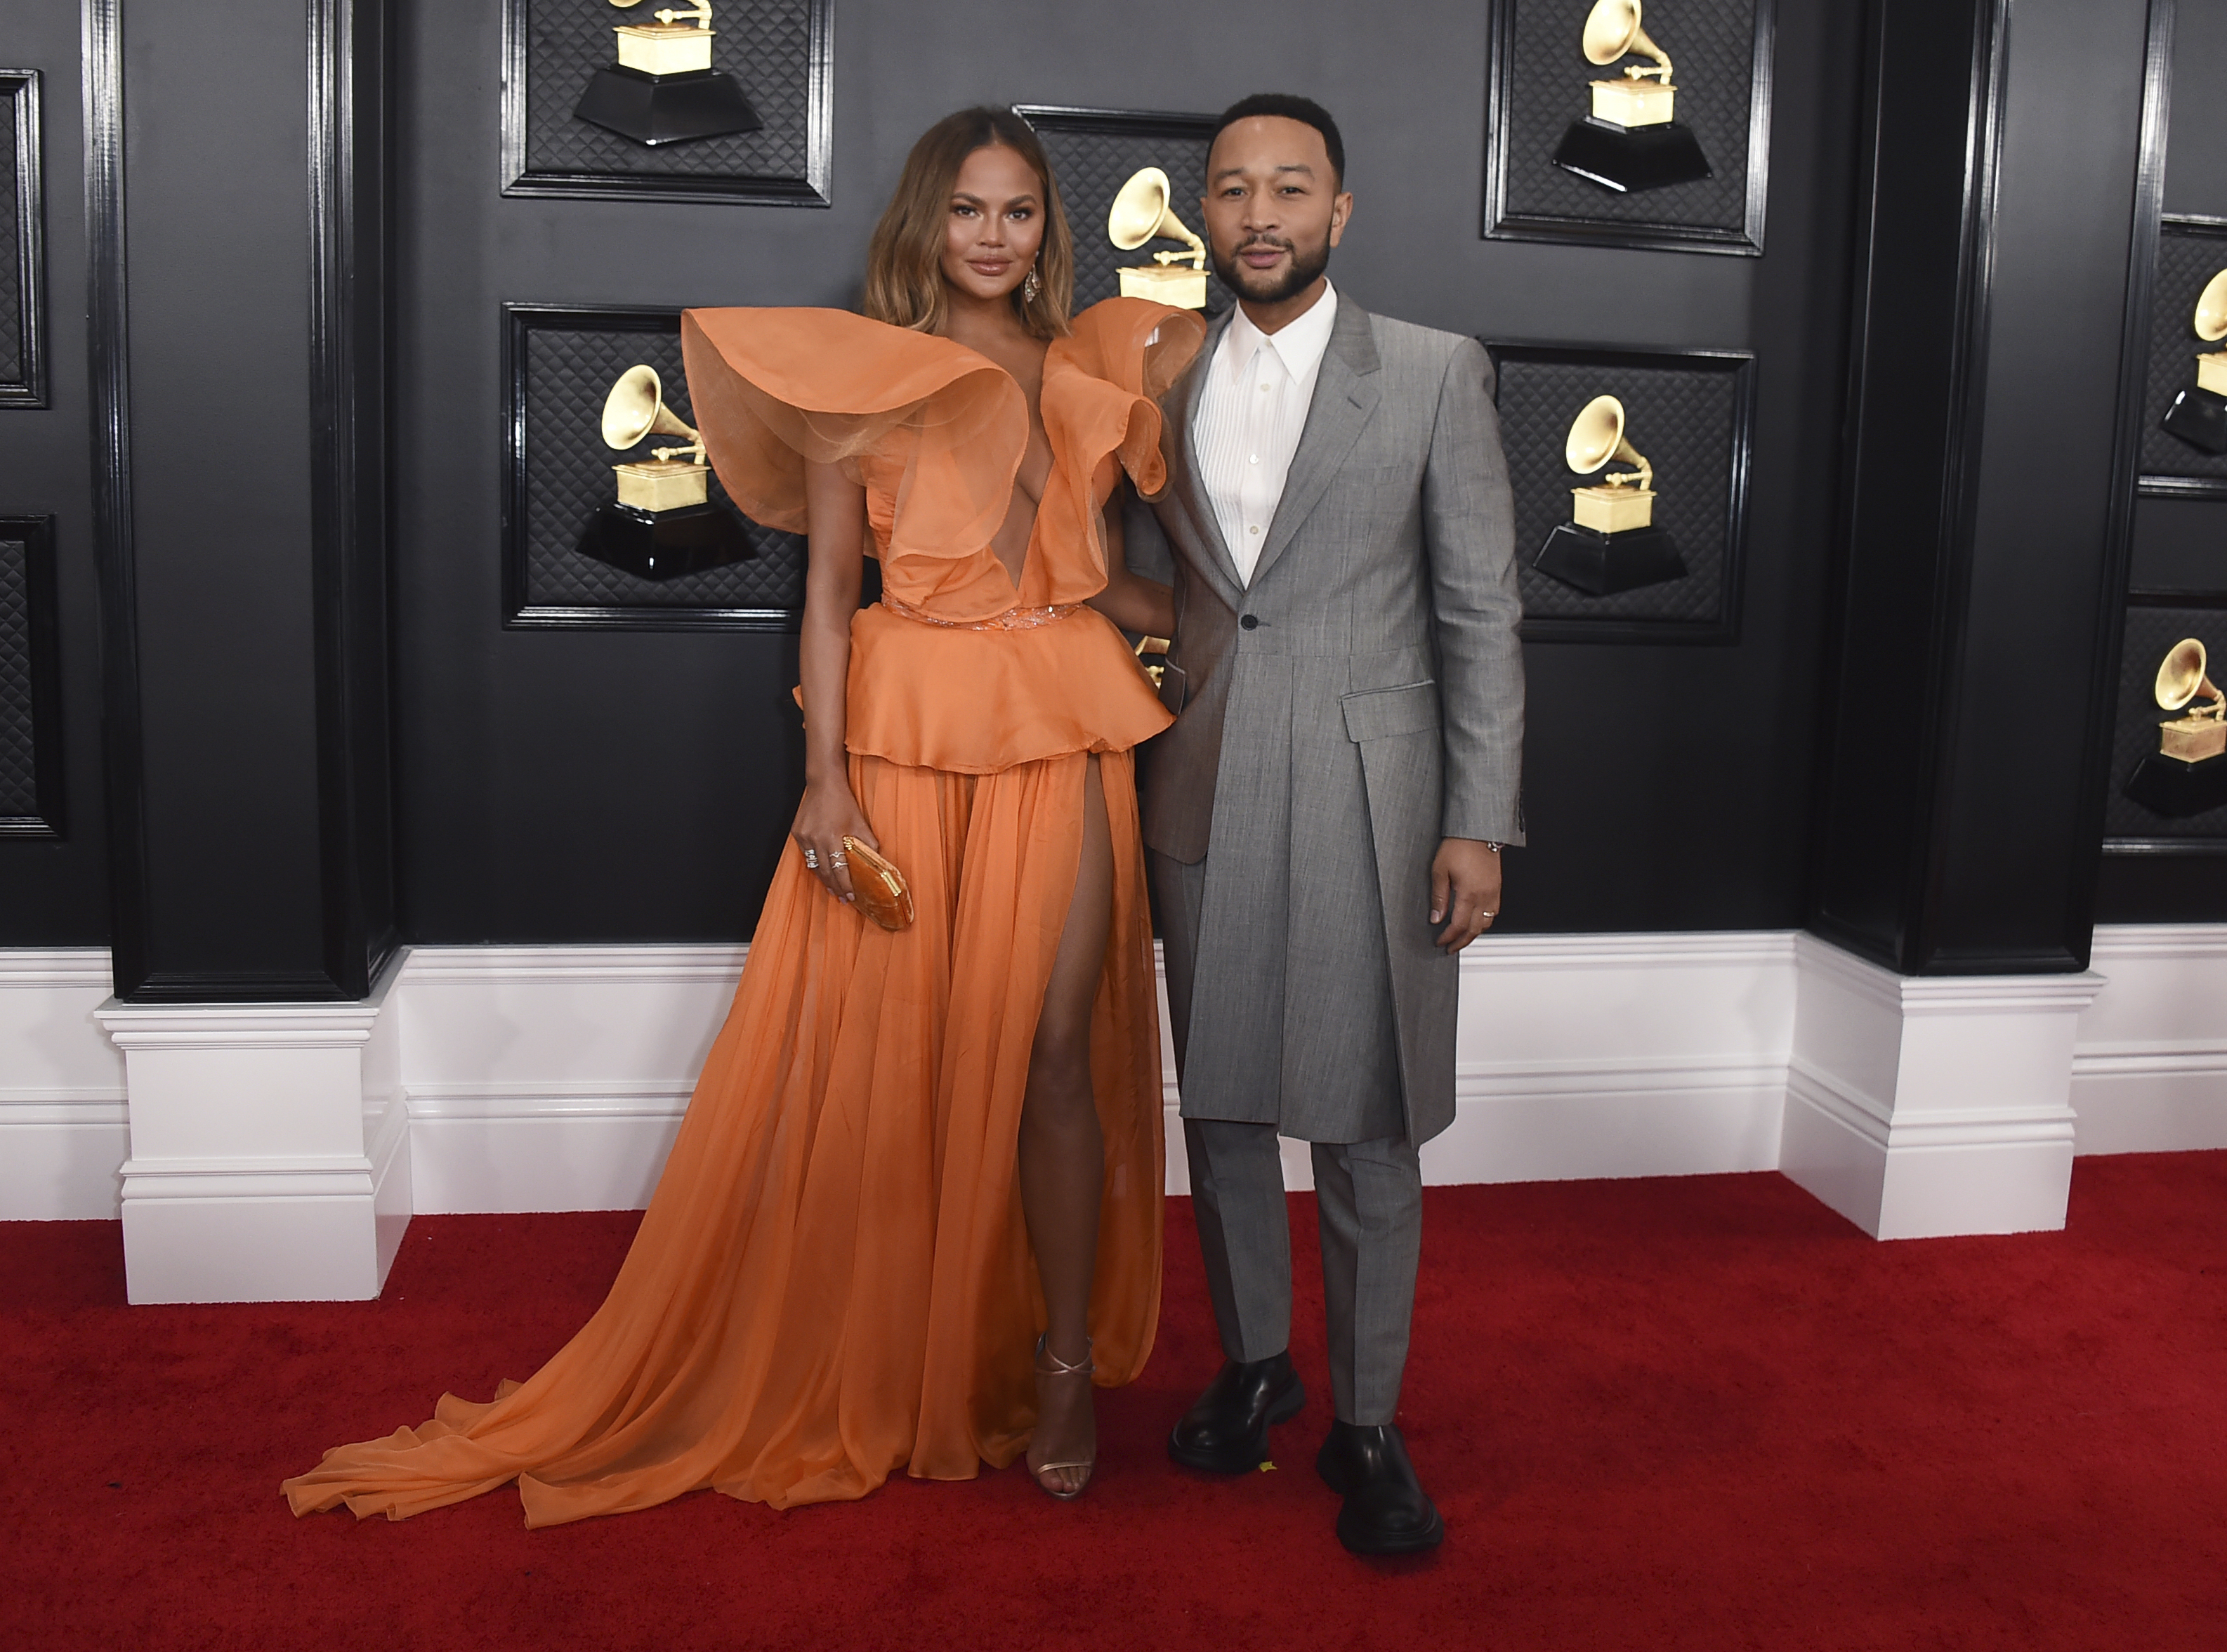 best dressed celebrities on the 2020 grammys red carpet cnn style https www cnn com style article grammys 2020 red carpet fashion index html